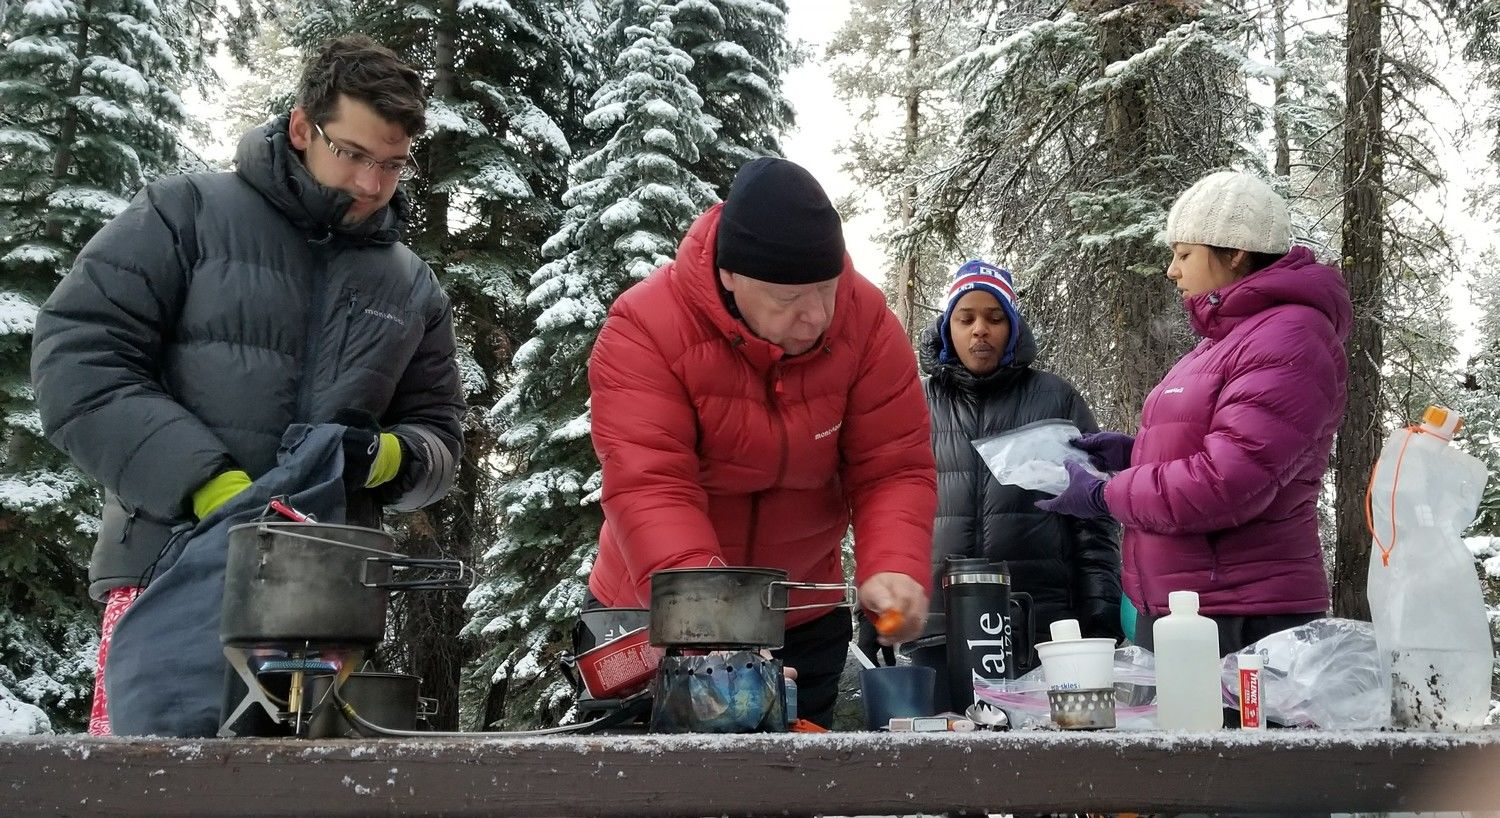 A variety of stoves being tested on a snowy cold morning.